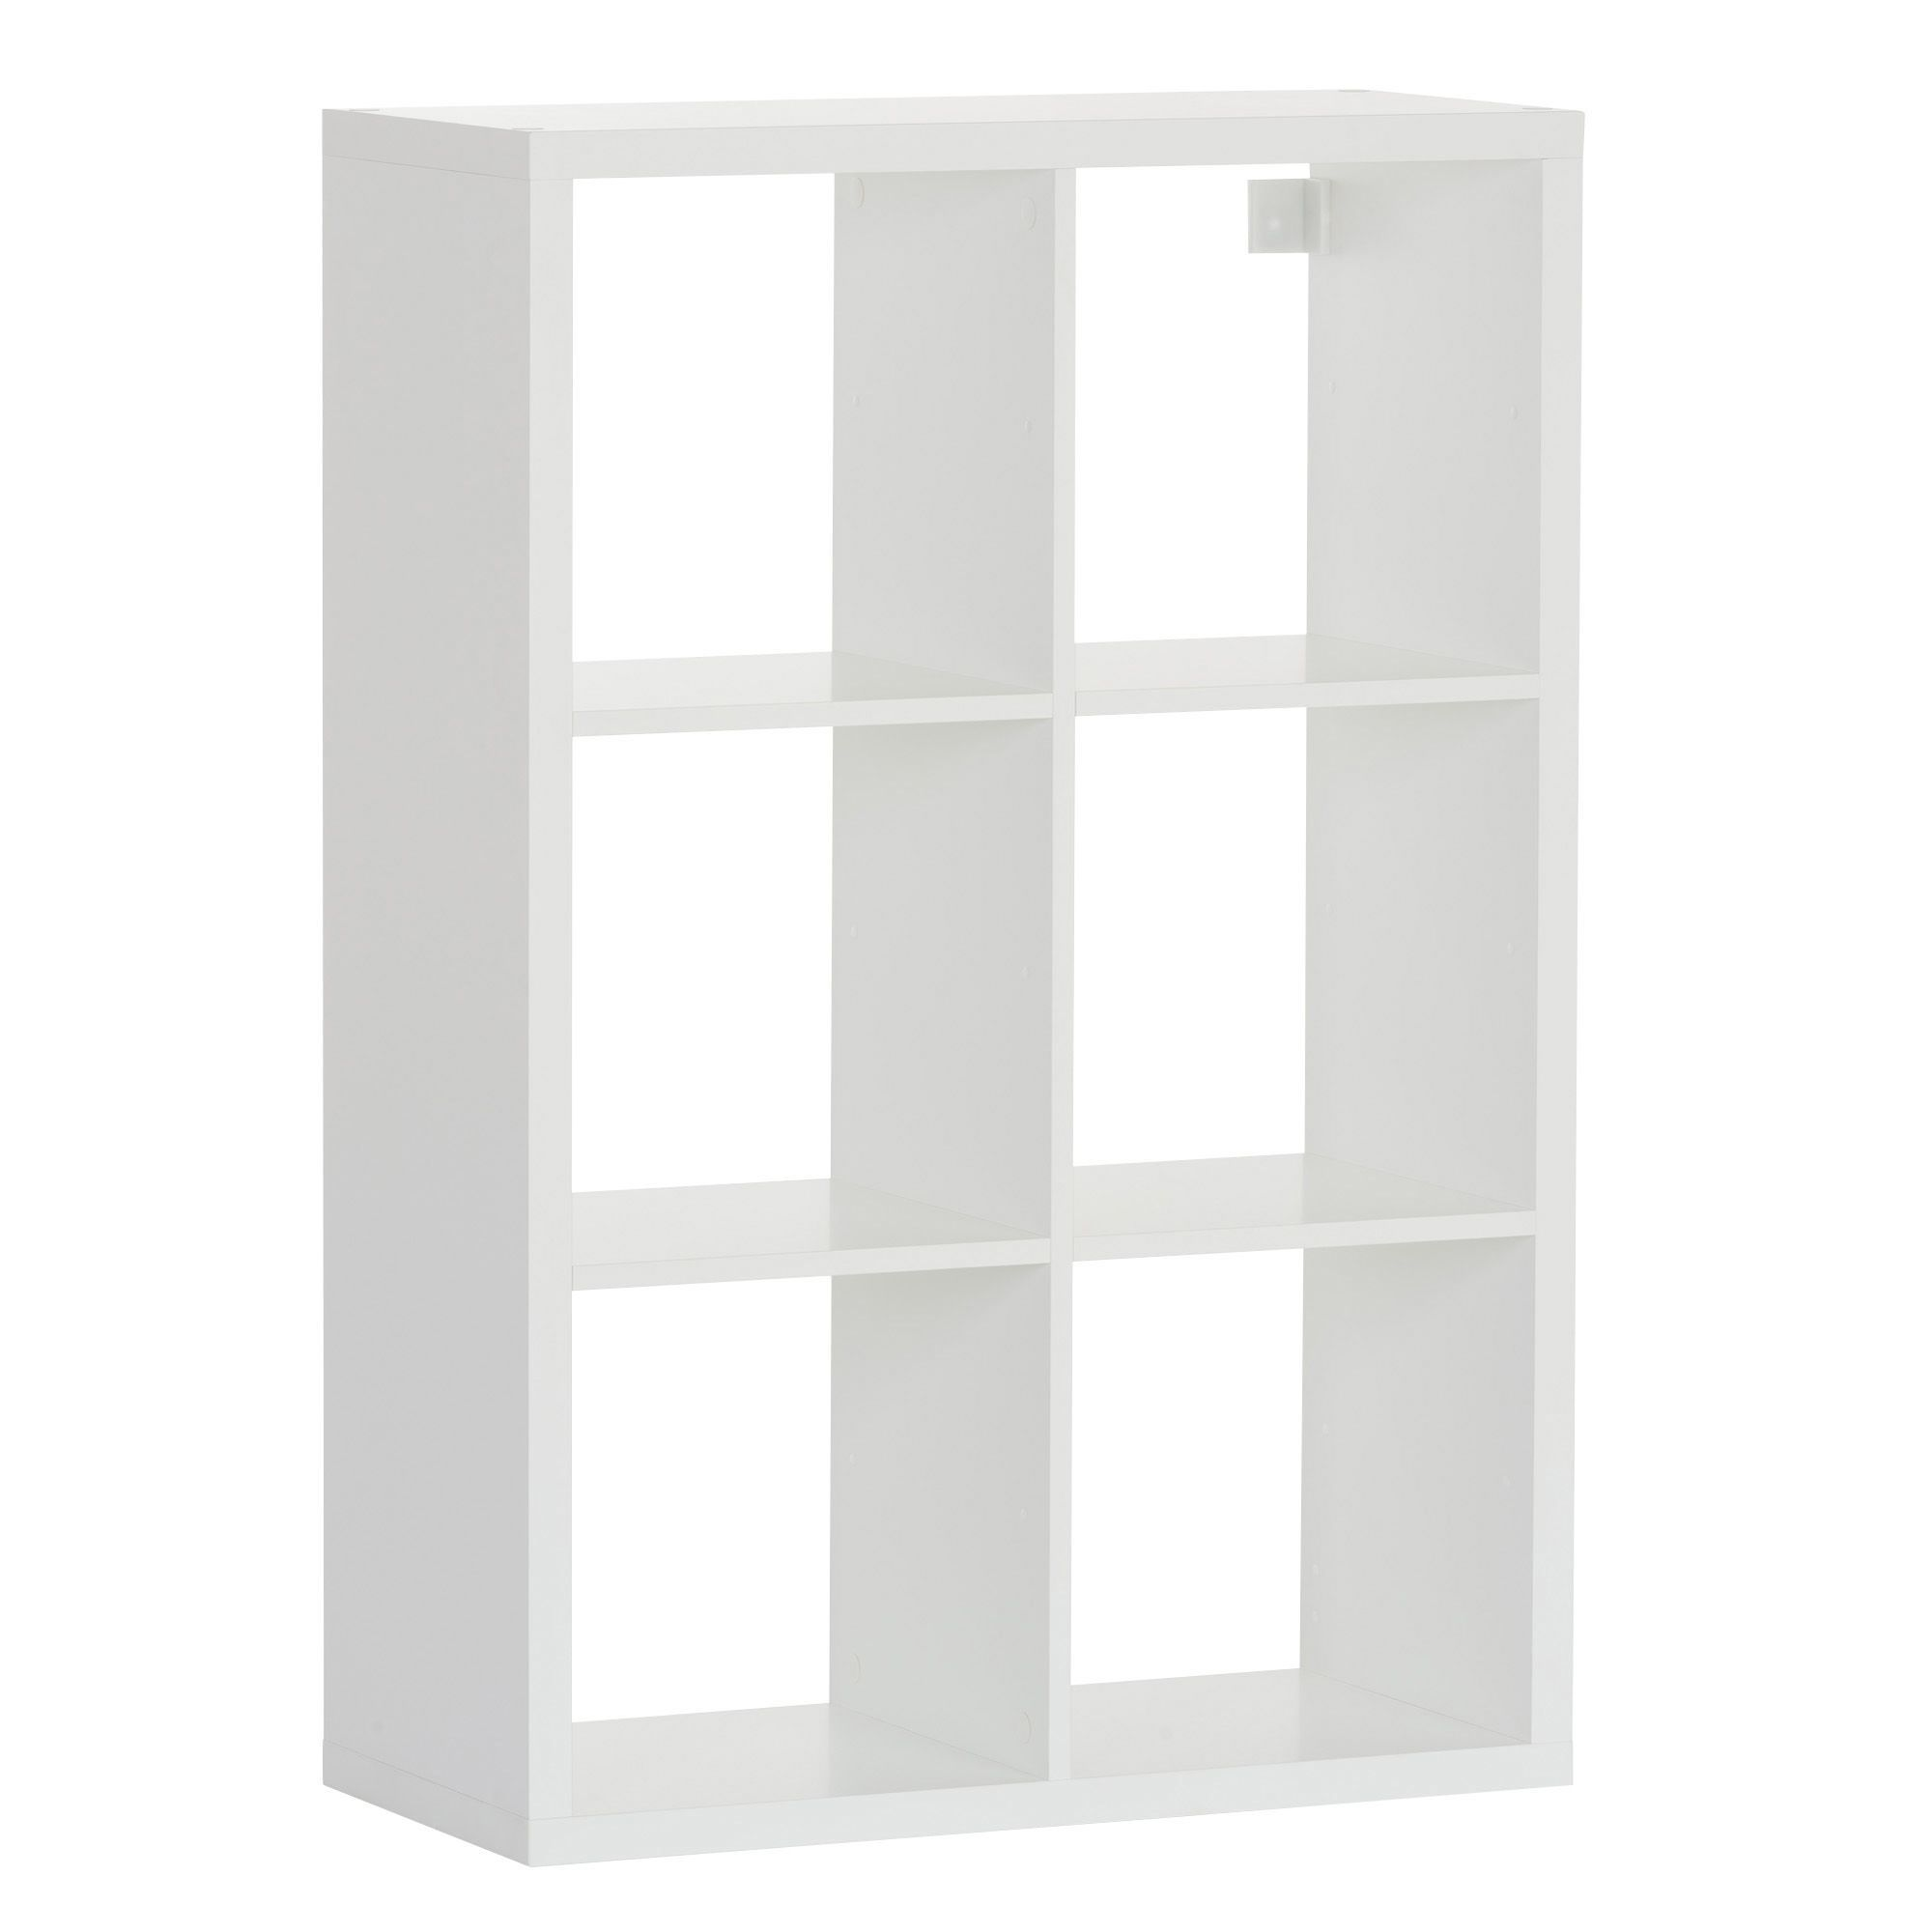 Form Mixxit White 6 Cube Shelving Unit (H)1080mm (W)740mm | Departments |  DIY at B&Q